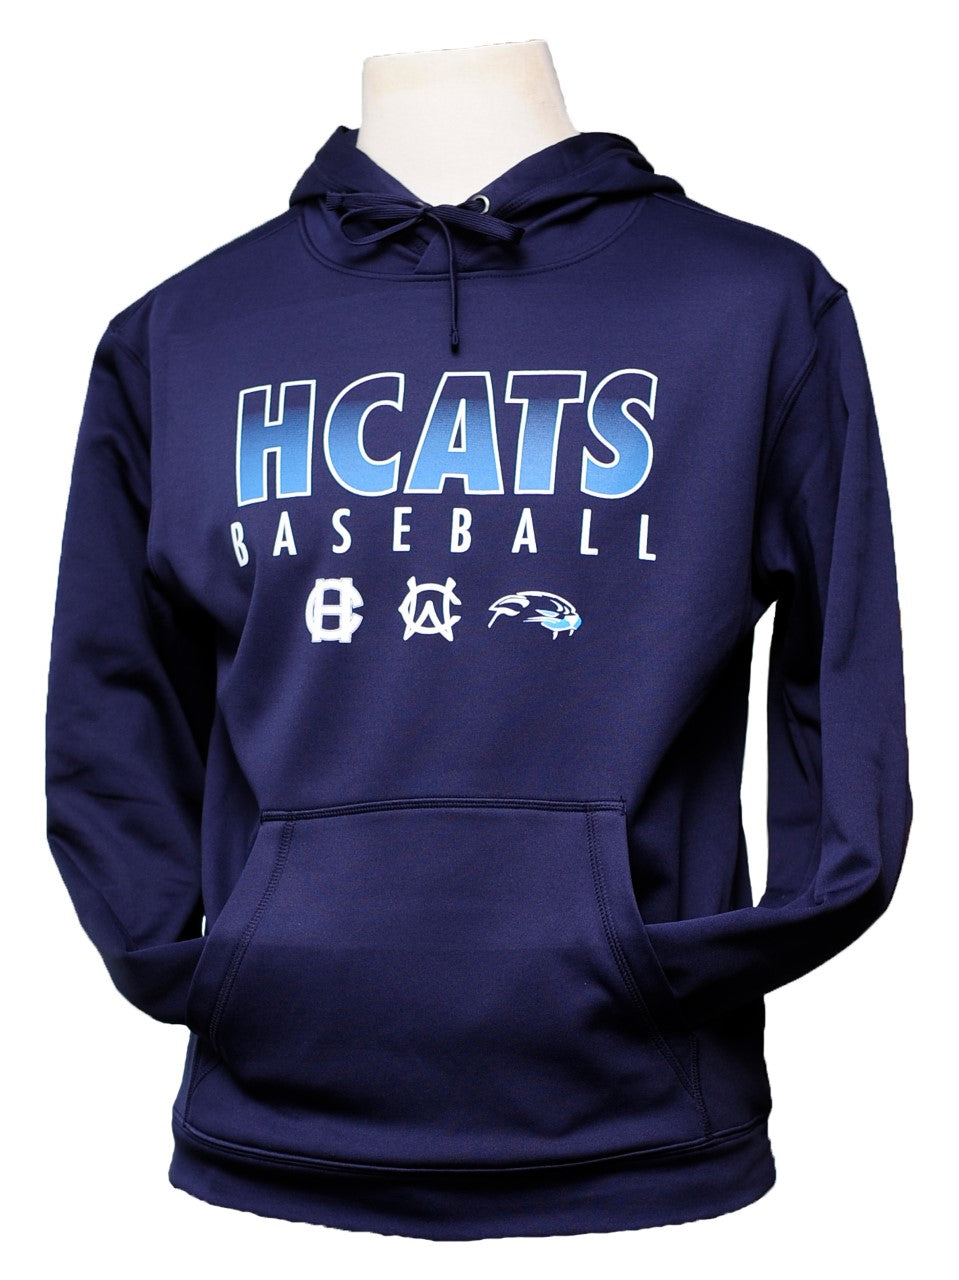 Player Gear Light Weight Hoodie